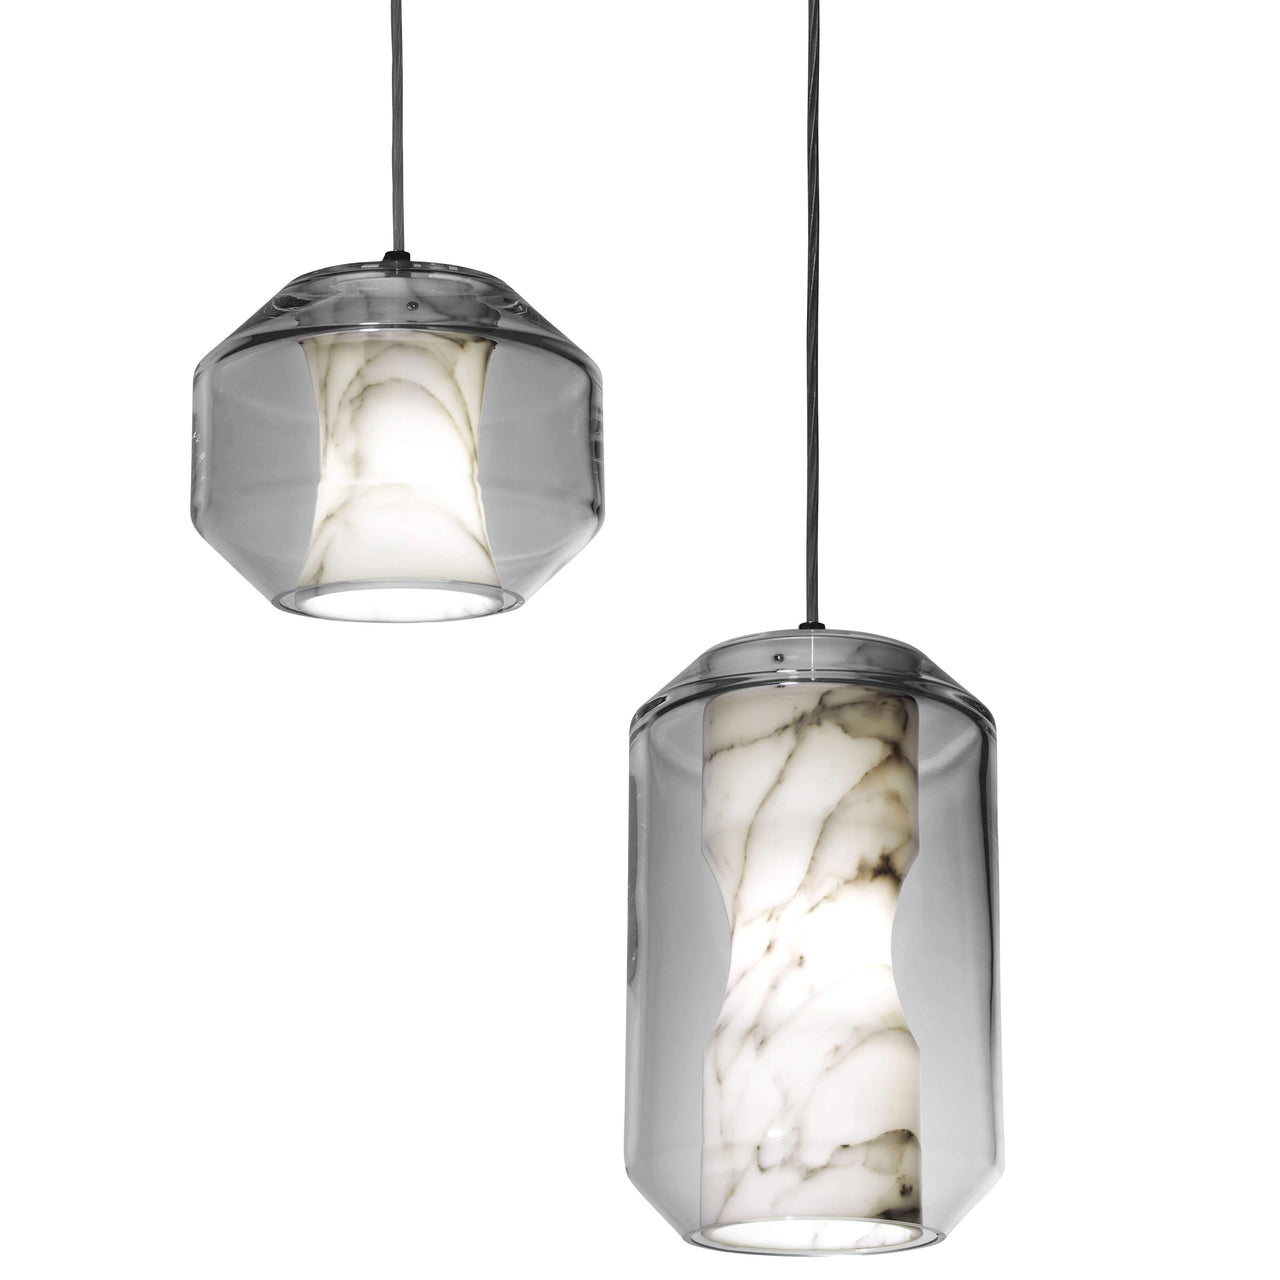 Chamber Pendant Light: Small + Large